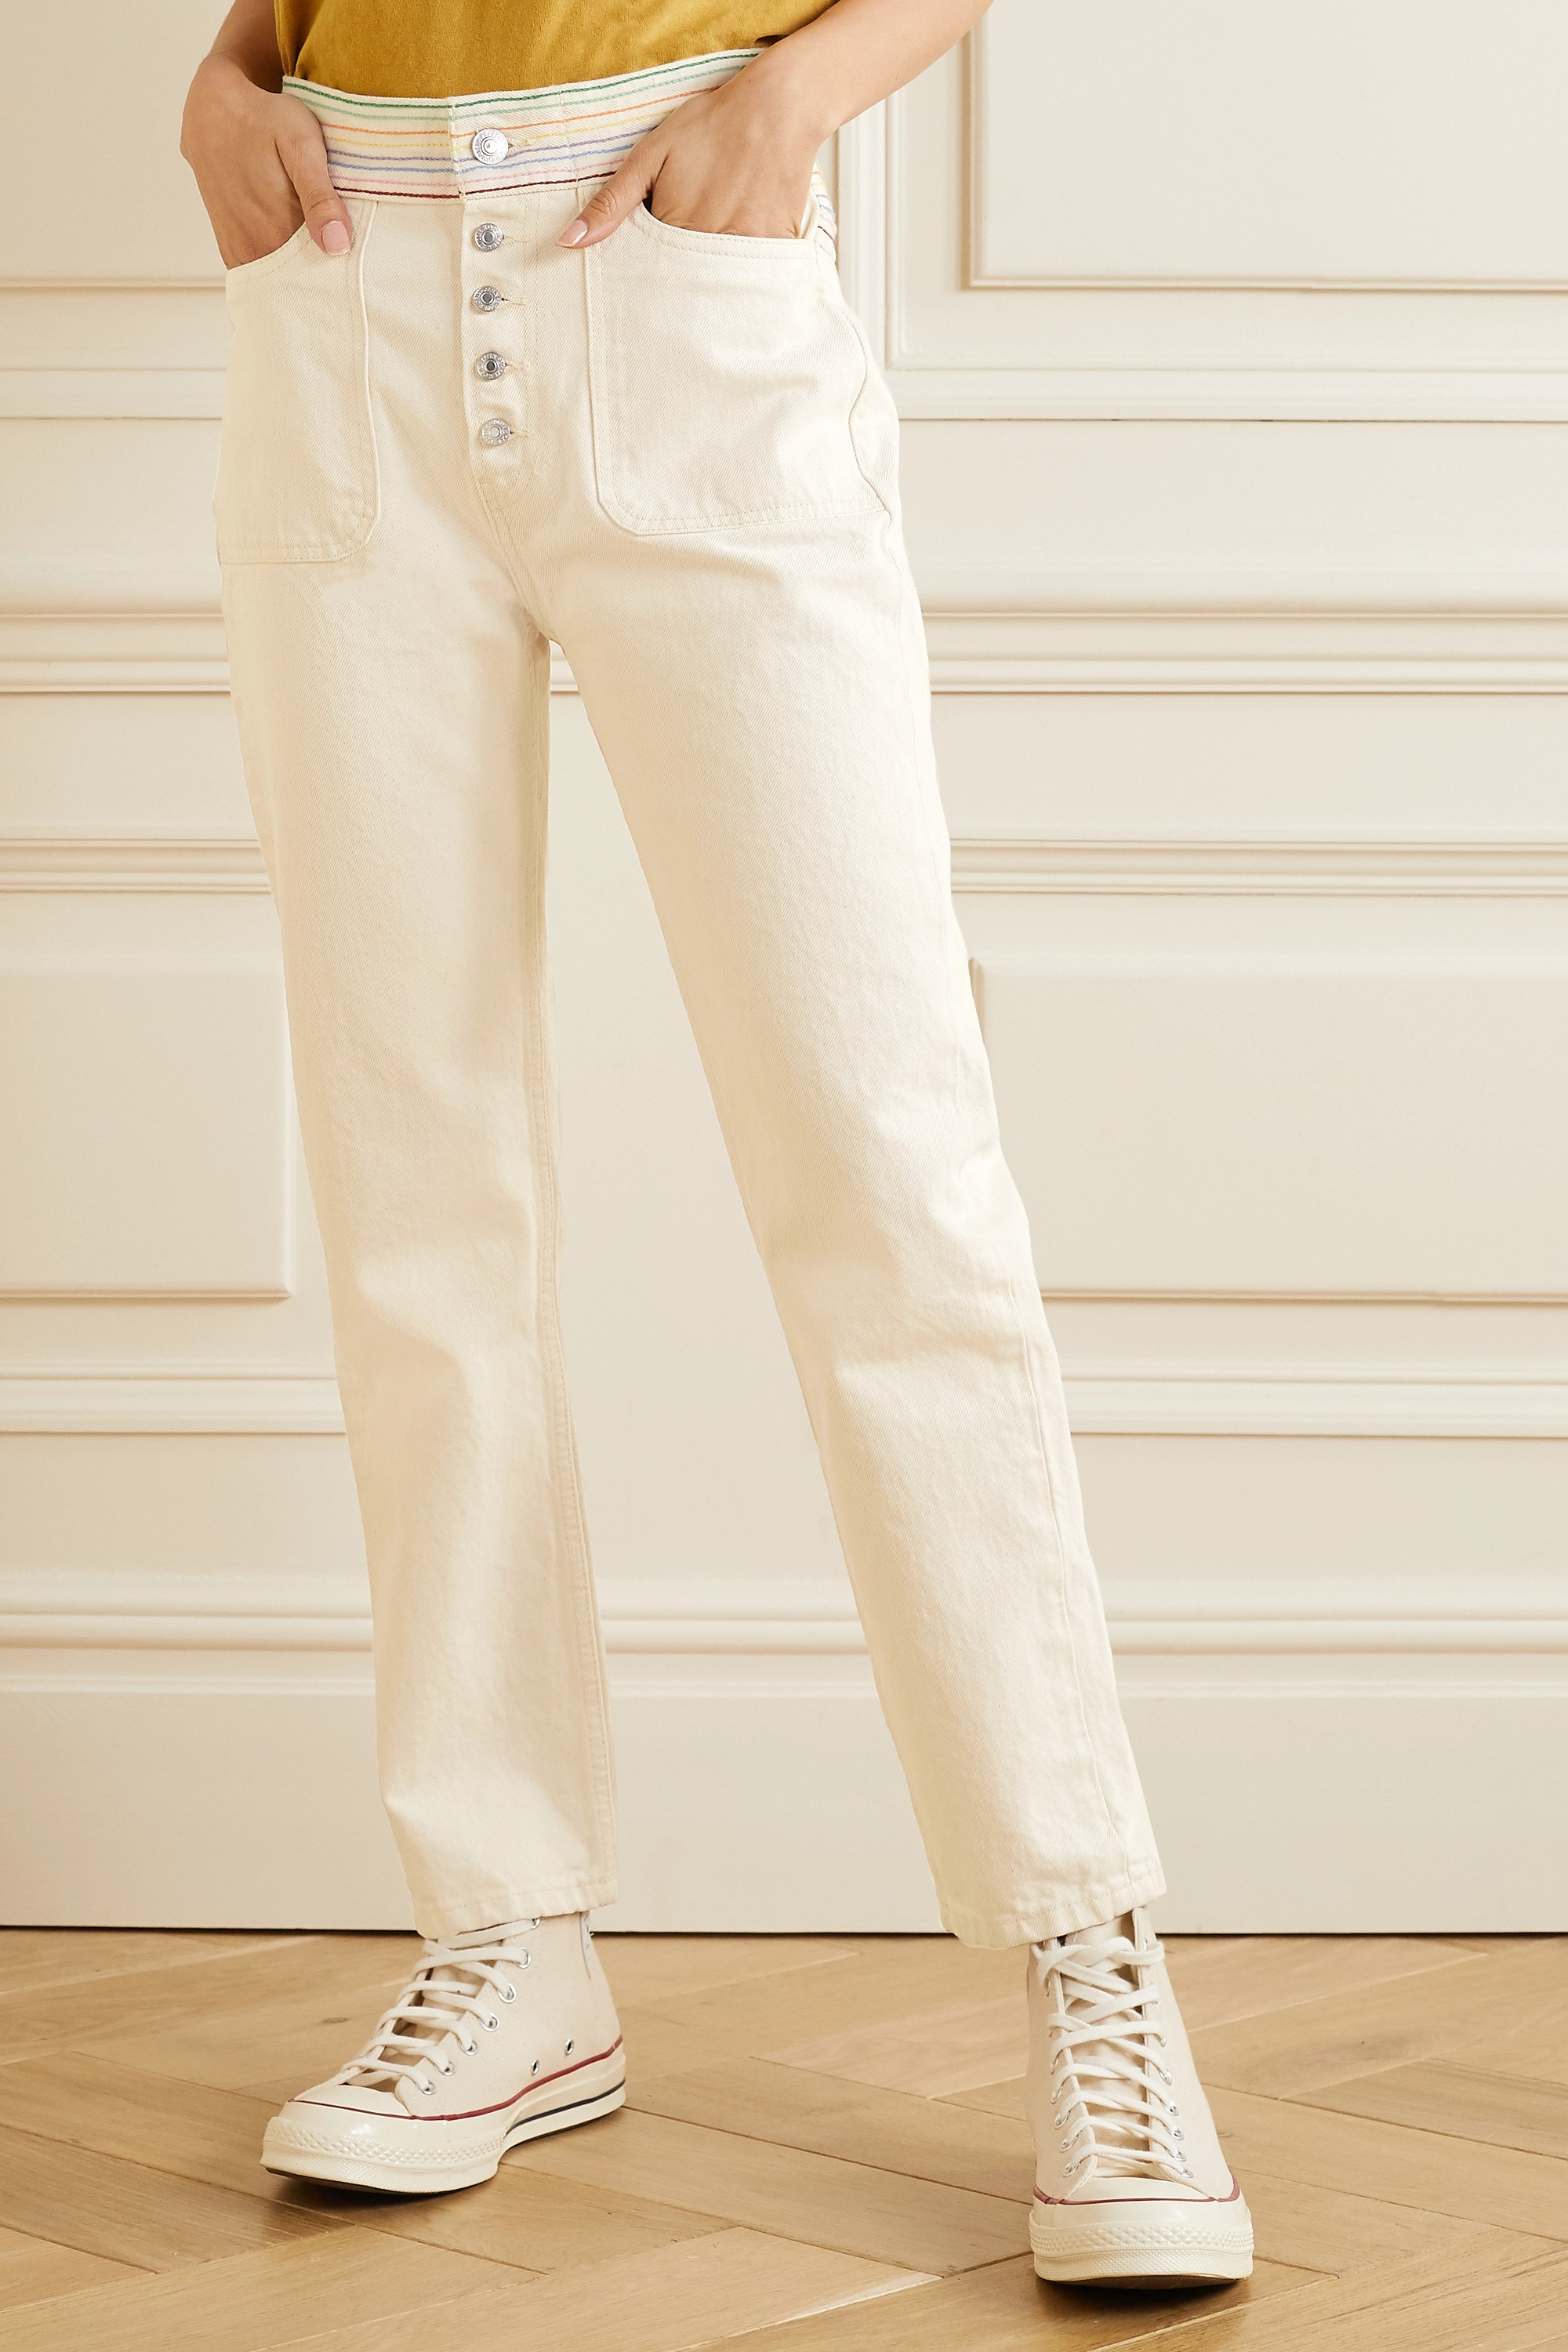 RE/DONE + Blanca Miró Stove Pipe embroidered high-rise straight-leg jeans